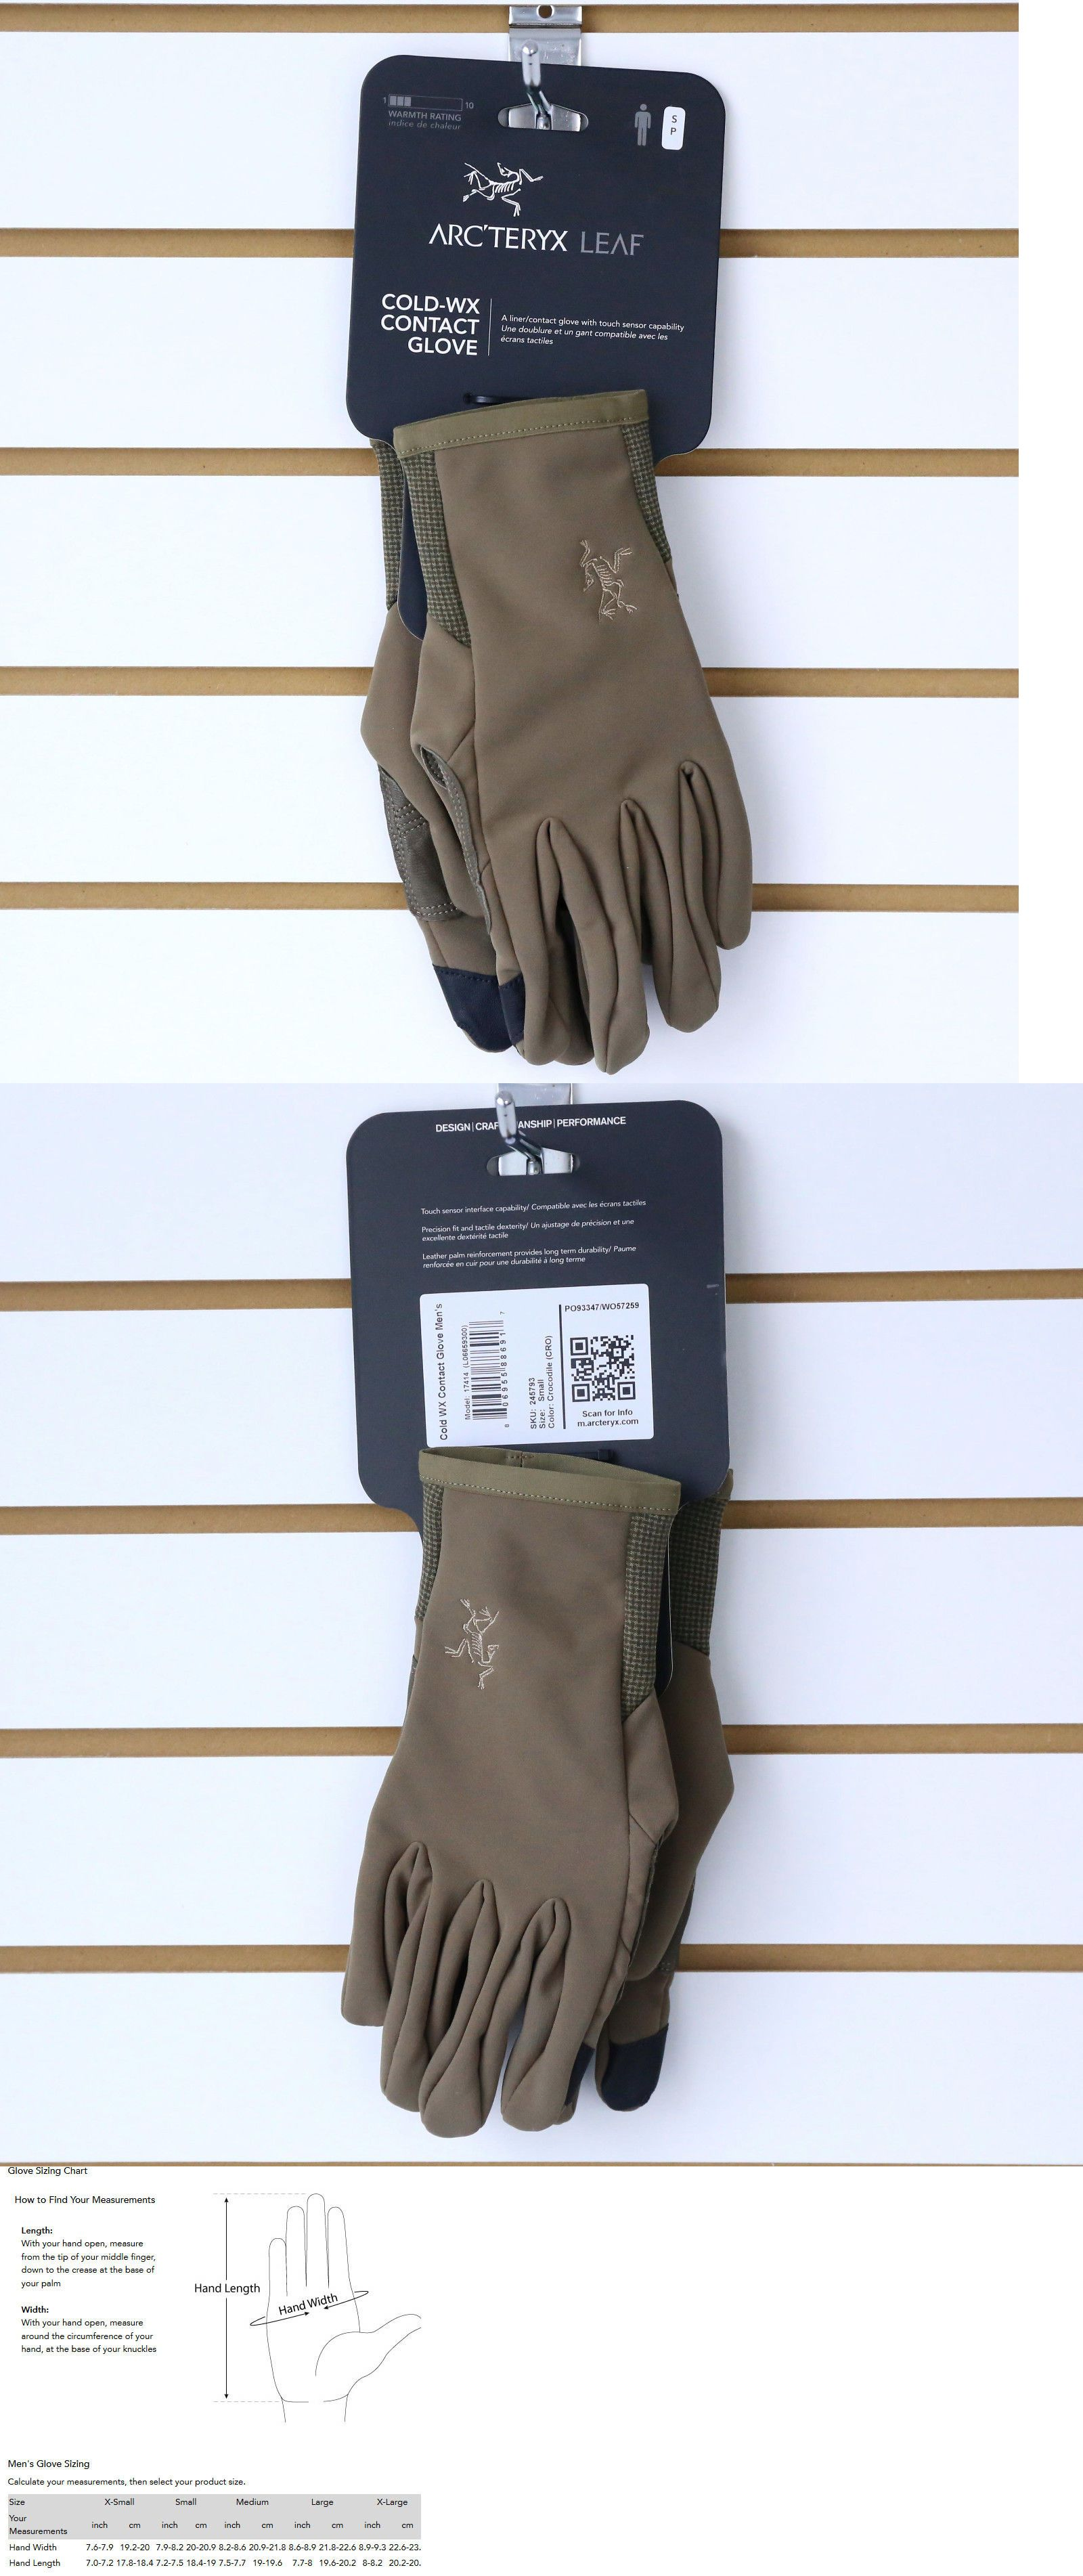 Tactical Gloves 177898: Nwt Arc Teryx Leaf Cold Wx Contact Gloves Tactical Military -> BUY IT NOW ONLY: $69.95 on eBay!